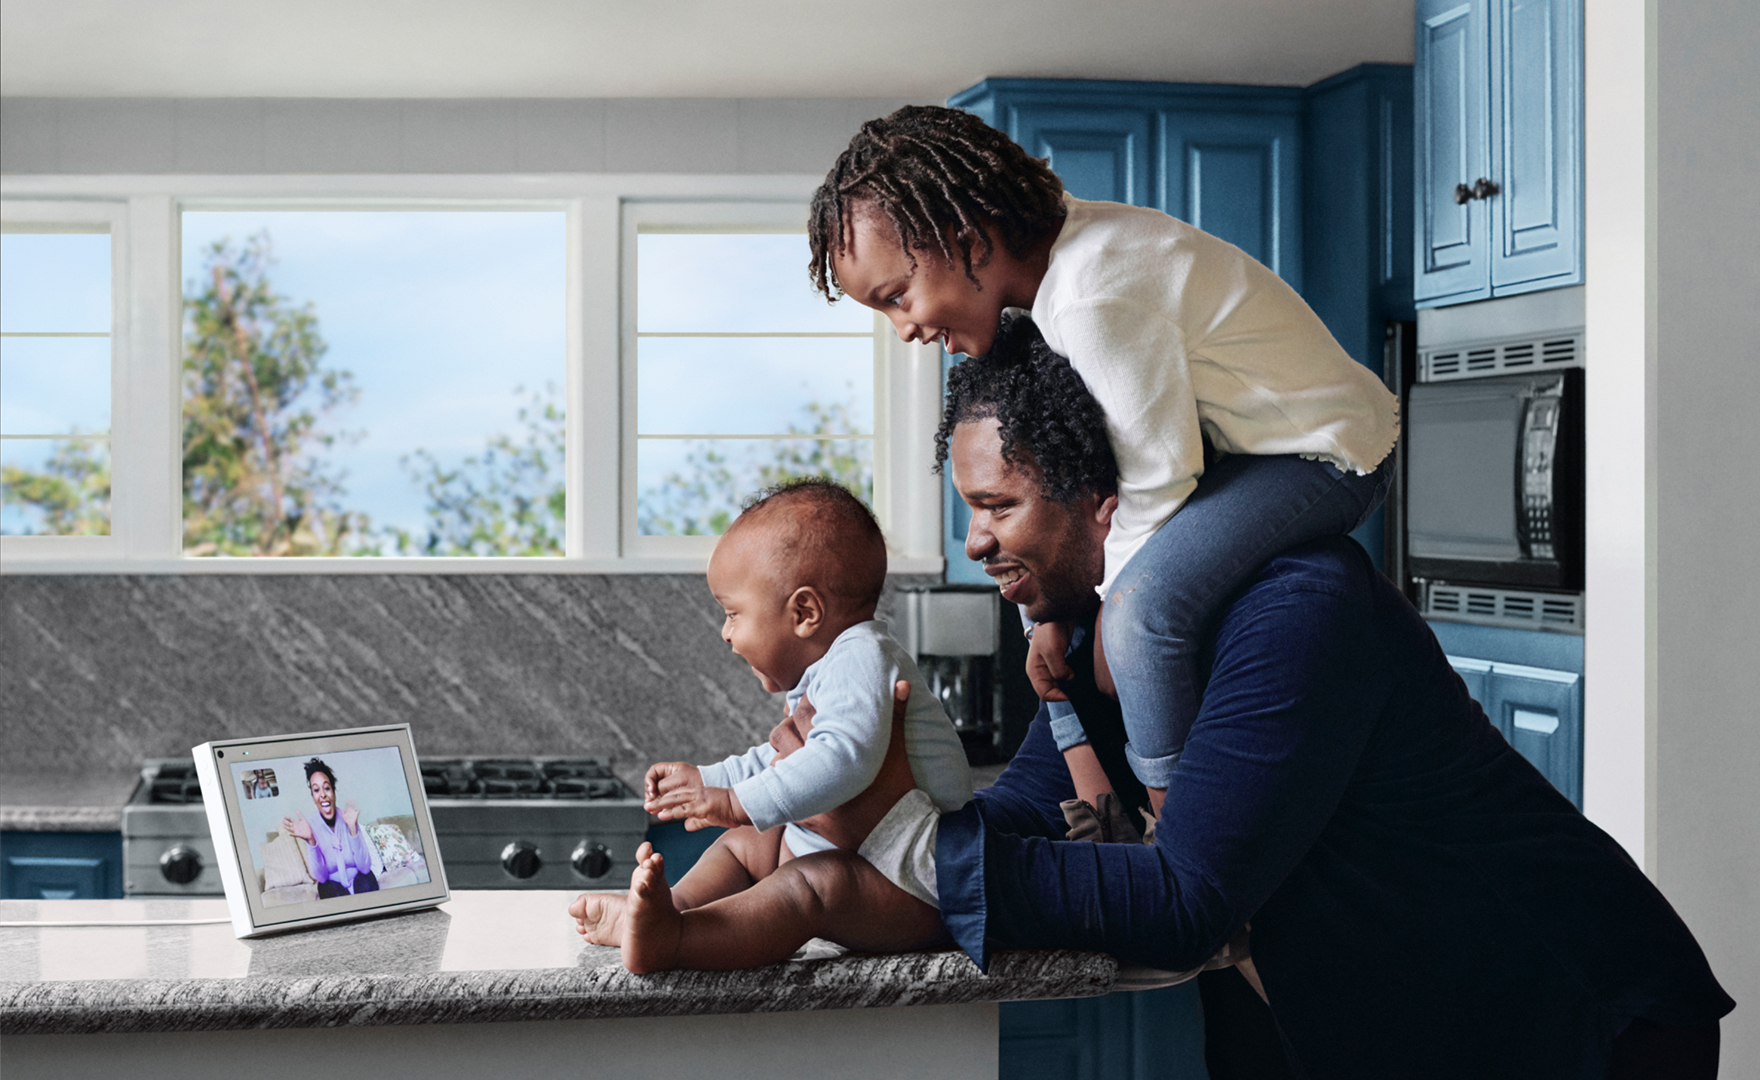 father with two children in kitchen conversing with grandmother via Portal device